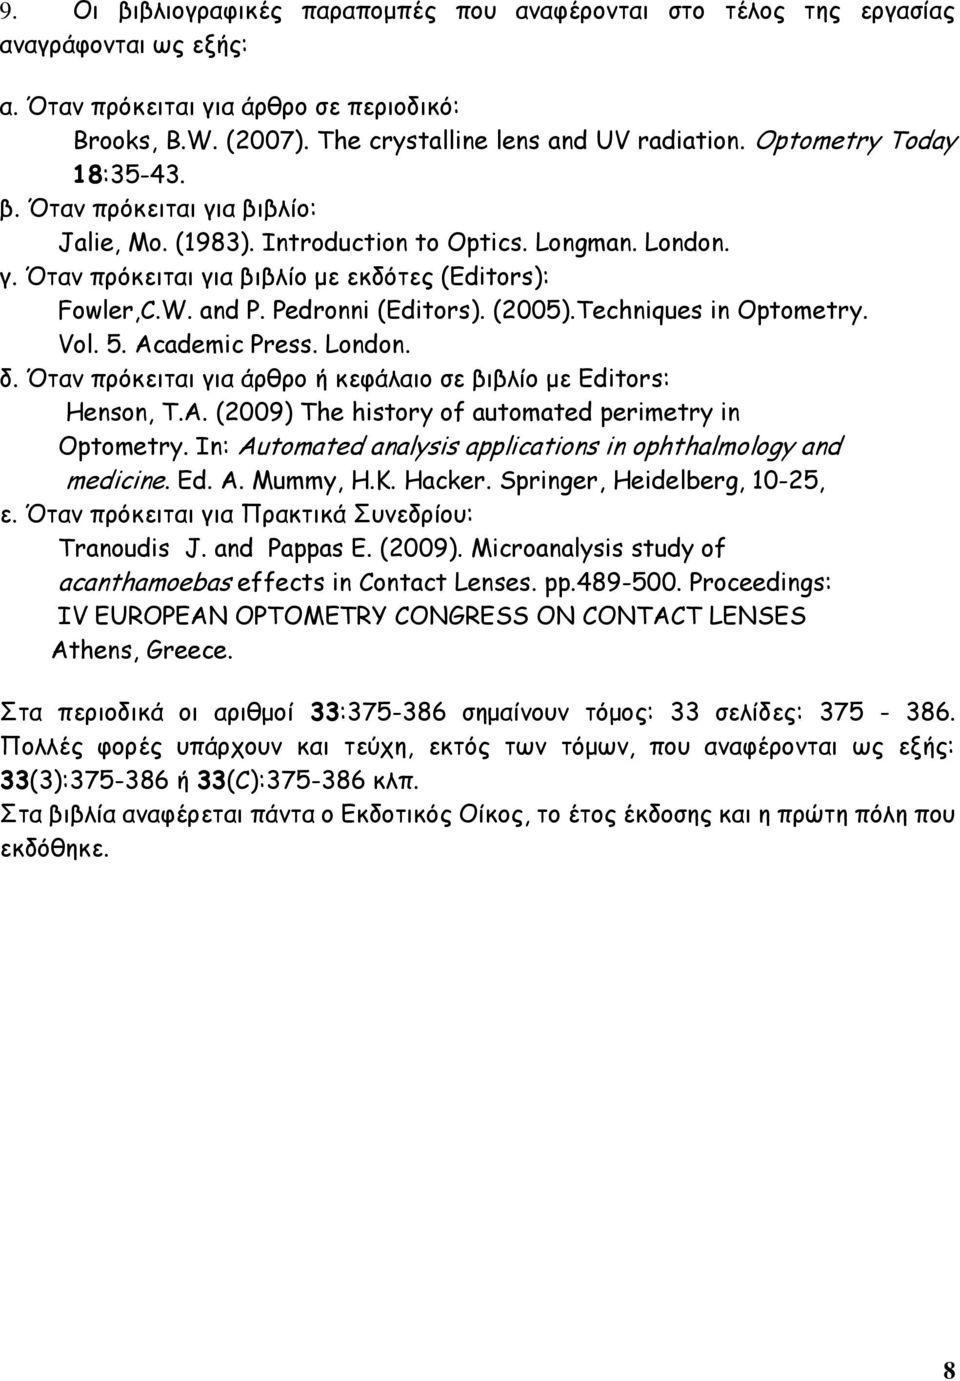 A. (2009) The history of automated perimetry in Optometry. In: Automated analysis applications in ophthalmology and medicine. Ed. A. Mummy, H.K. Hacker. Springer, Heidelberg, 10-25,.